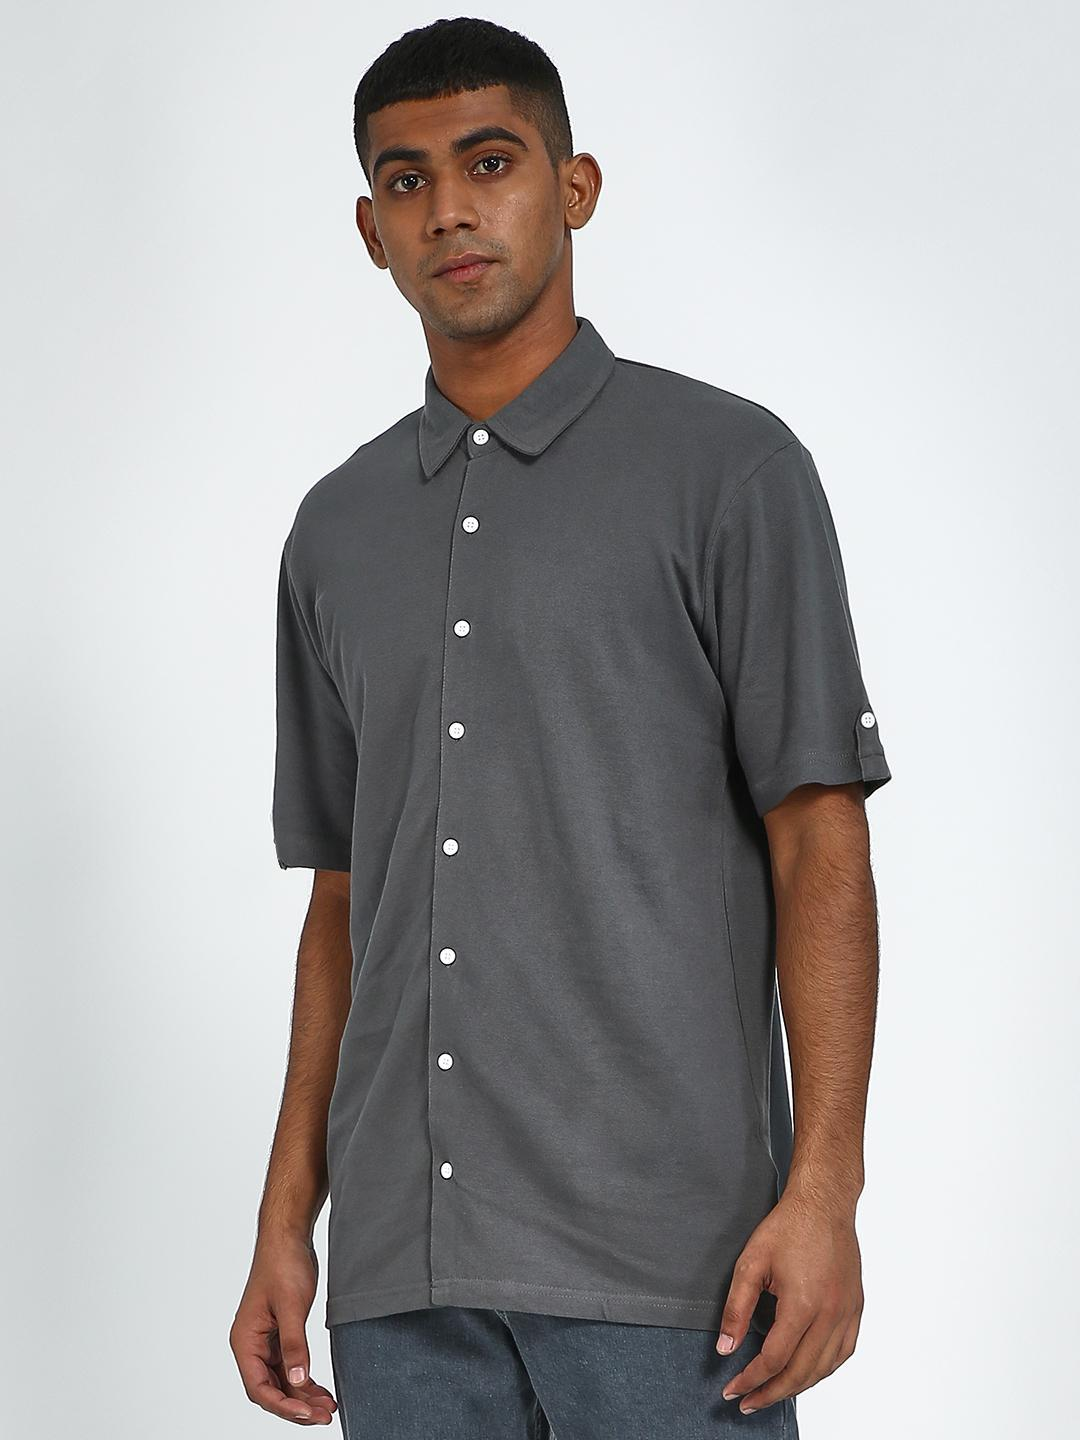 Blue Saint Grey Contrast Button Casual Shirt 1